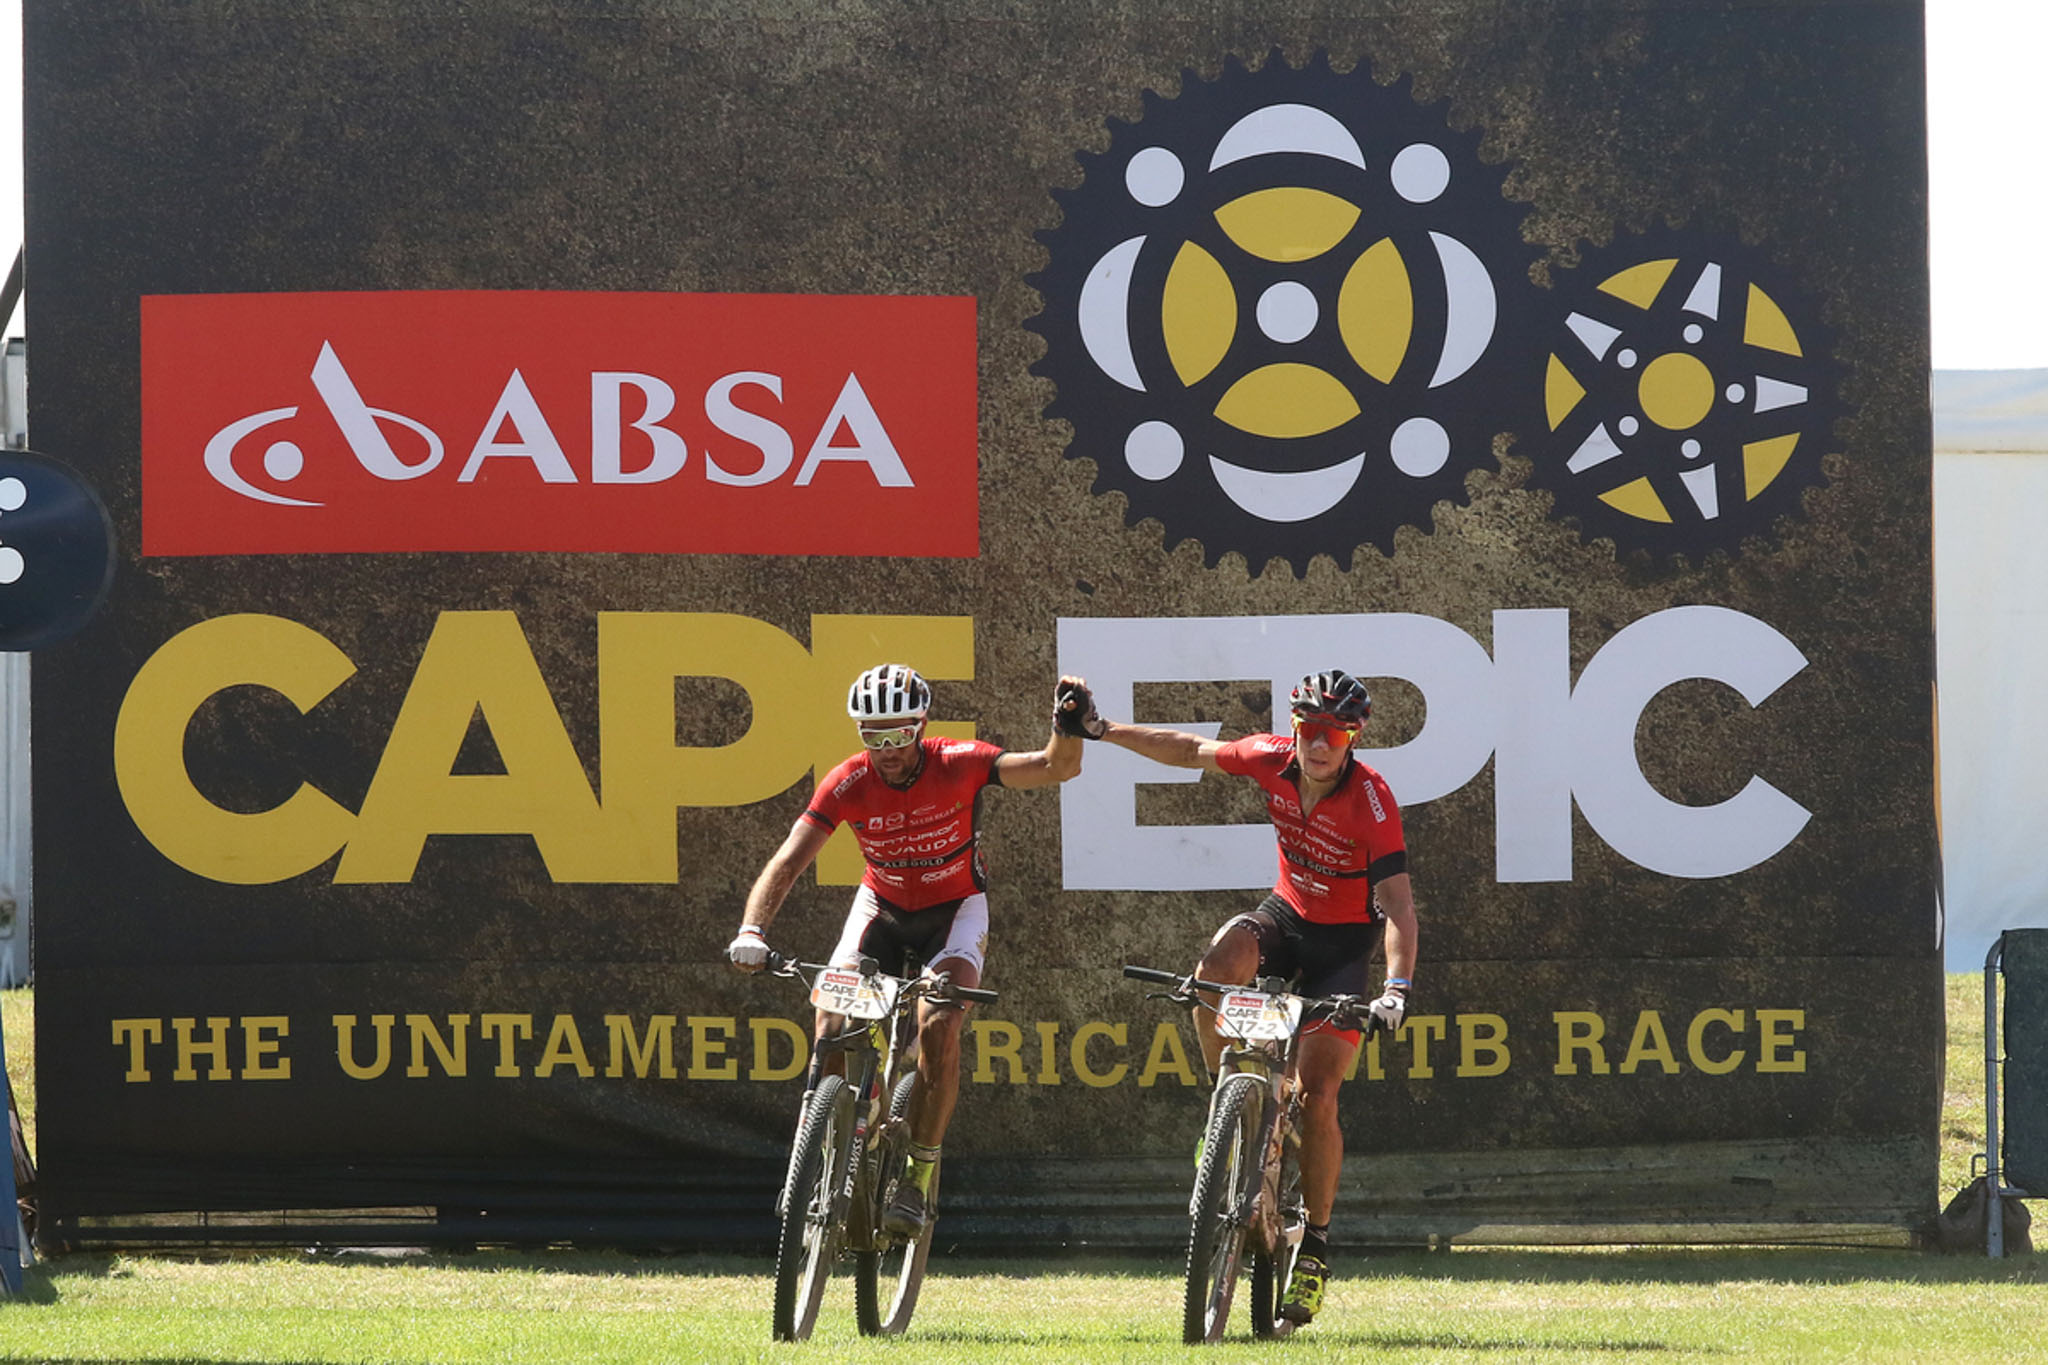 Nicola Rohrbach and Matthias Pfommer of Centurion Vaude by Meerendal 2 celebratee finishing in second place during stage 3 of the 2016 Absa Cape Epic Mountain Bike stage race held from Saronsberg Wine Estate in Tulbagh to the Cape Peninsula University of Technology in Wellington, South Africa on the 16th March 2016 Photo by Shaun Roy/Cape Epic/SPORTZPICS PLEASE ENSURE THE APPROPRIATE CREDIT IS GIVEN TO THE PHOTOGRAPHER AND SPORTZPICS ALONG WITH THE ABSA CAPE EPIC {ace2016}